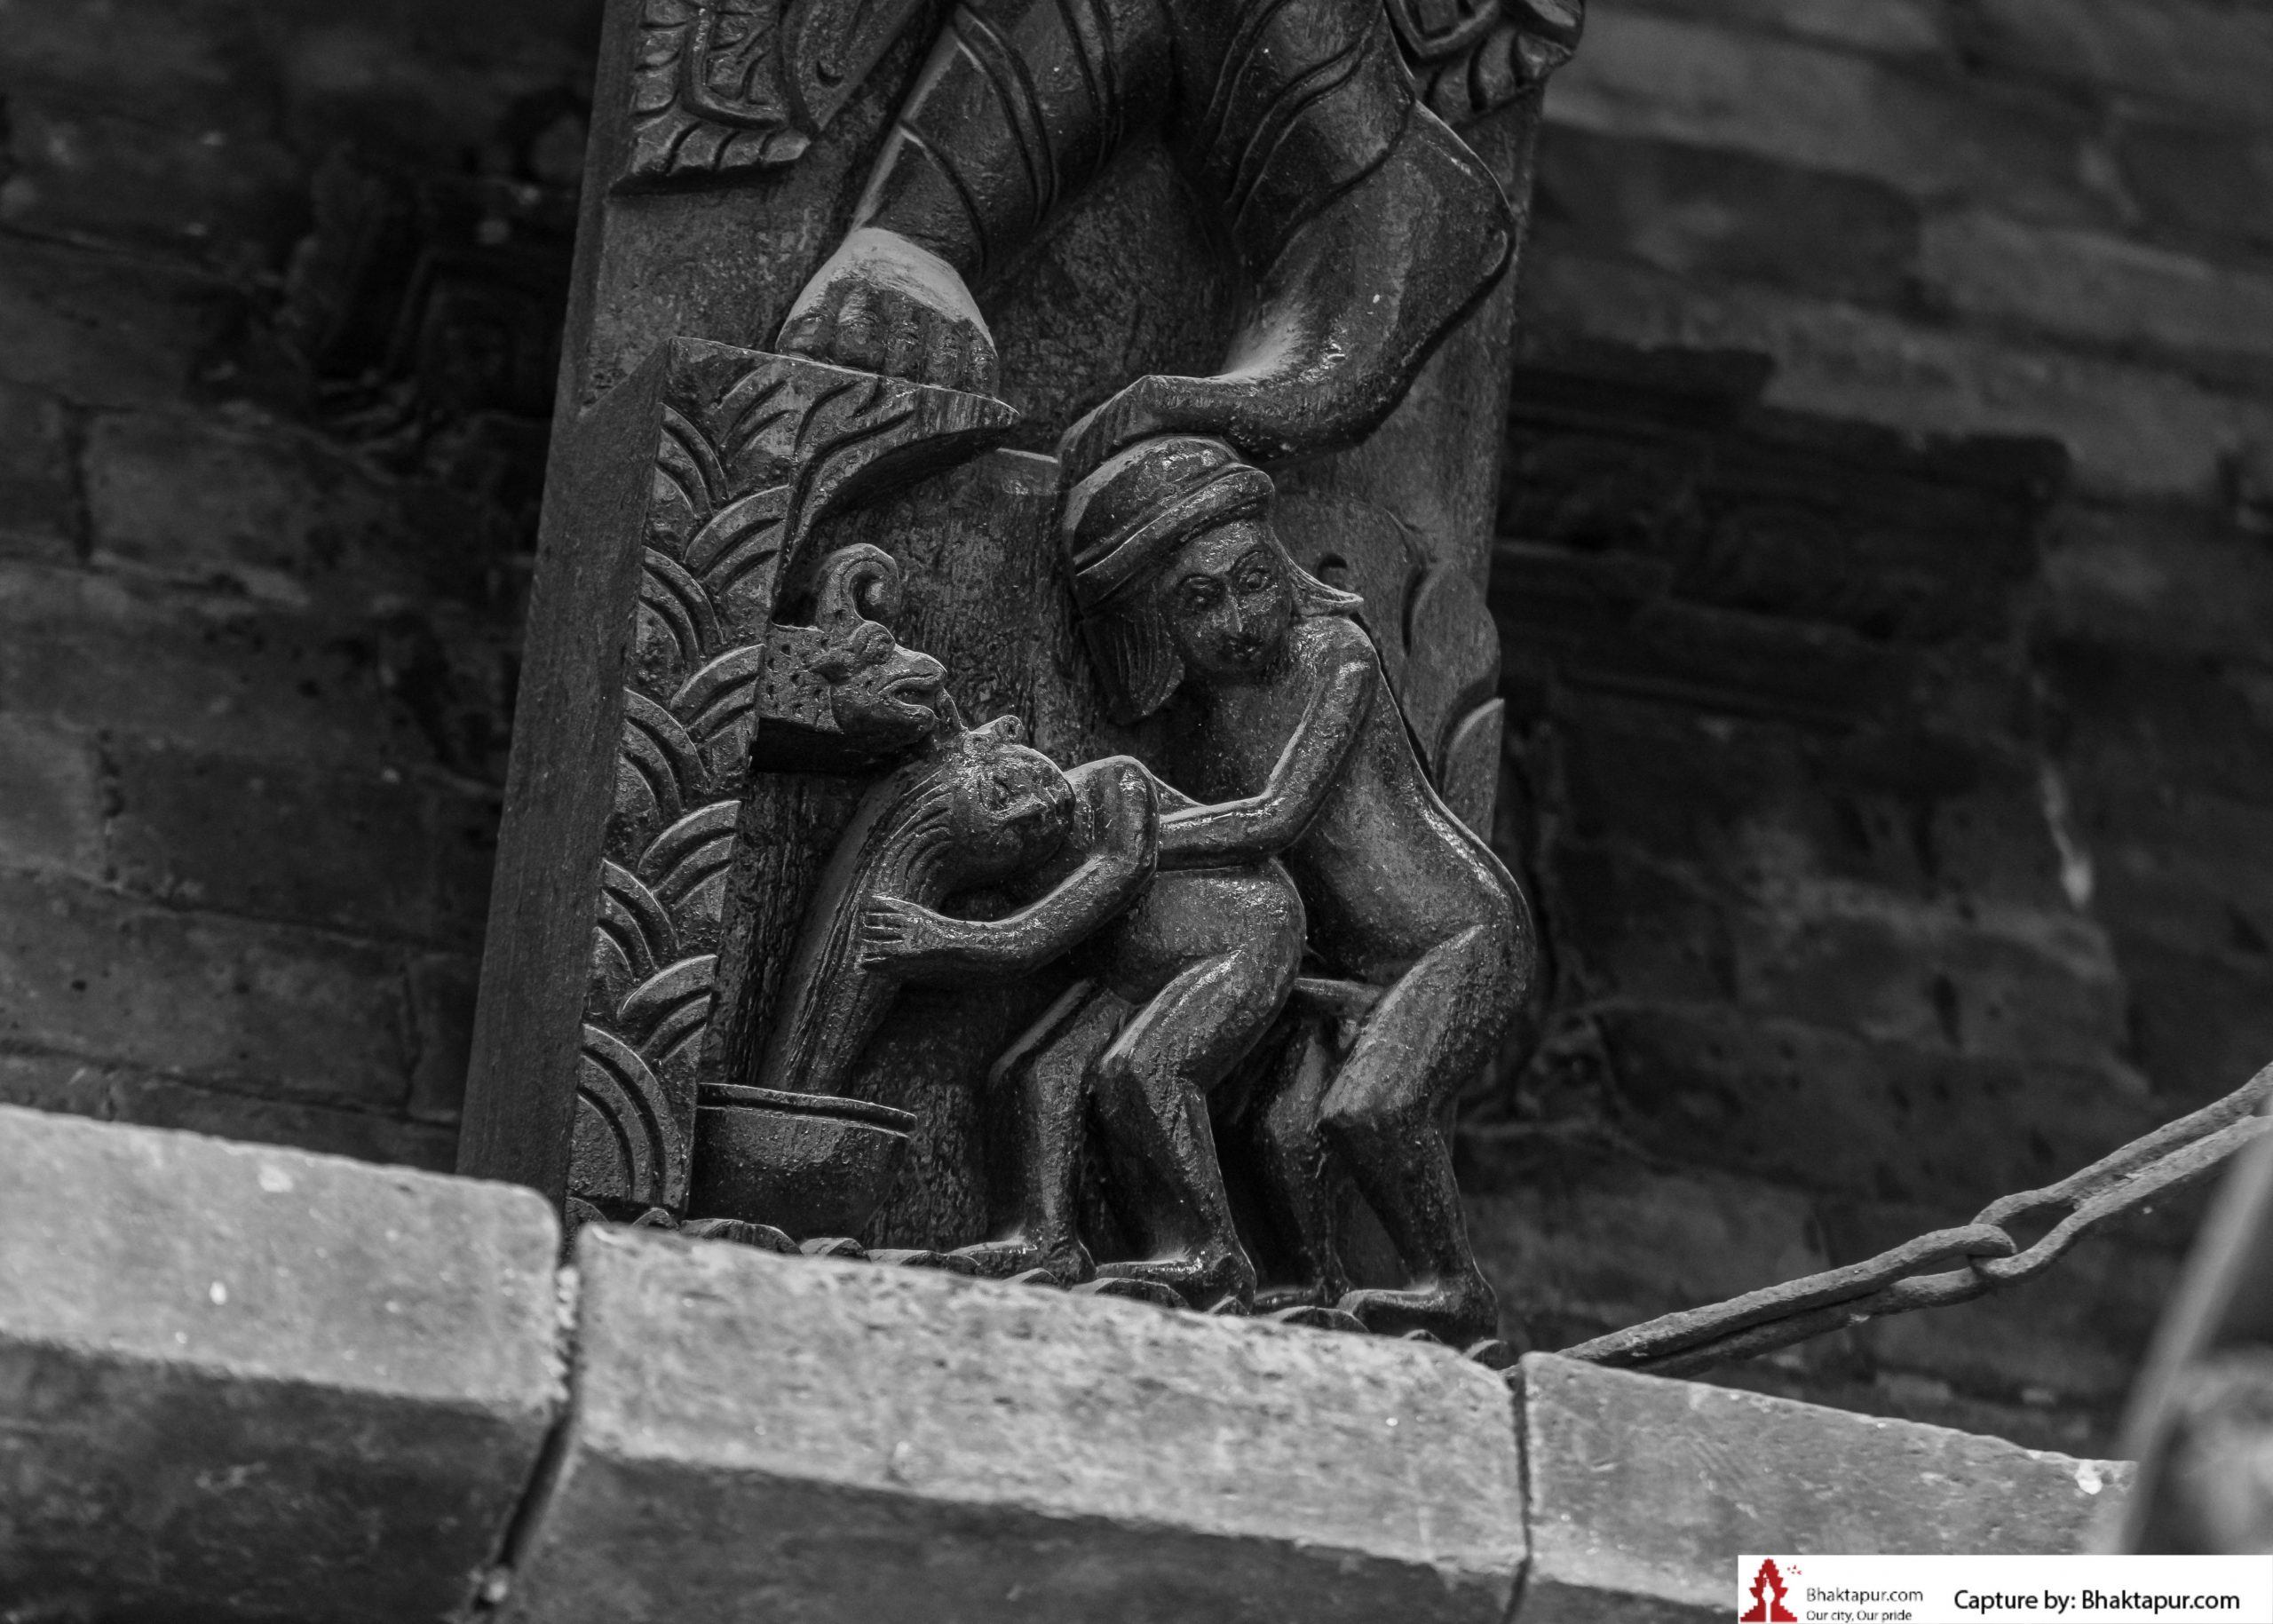 https://www.bhaktapur.com/wp-content/uploads/2021/08/erotic-carving-32-of-137-scaled.jpg